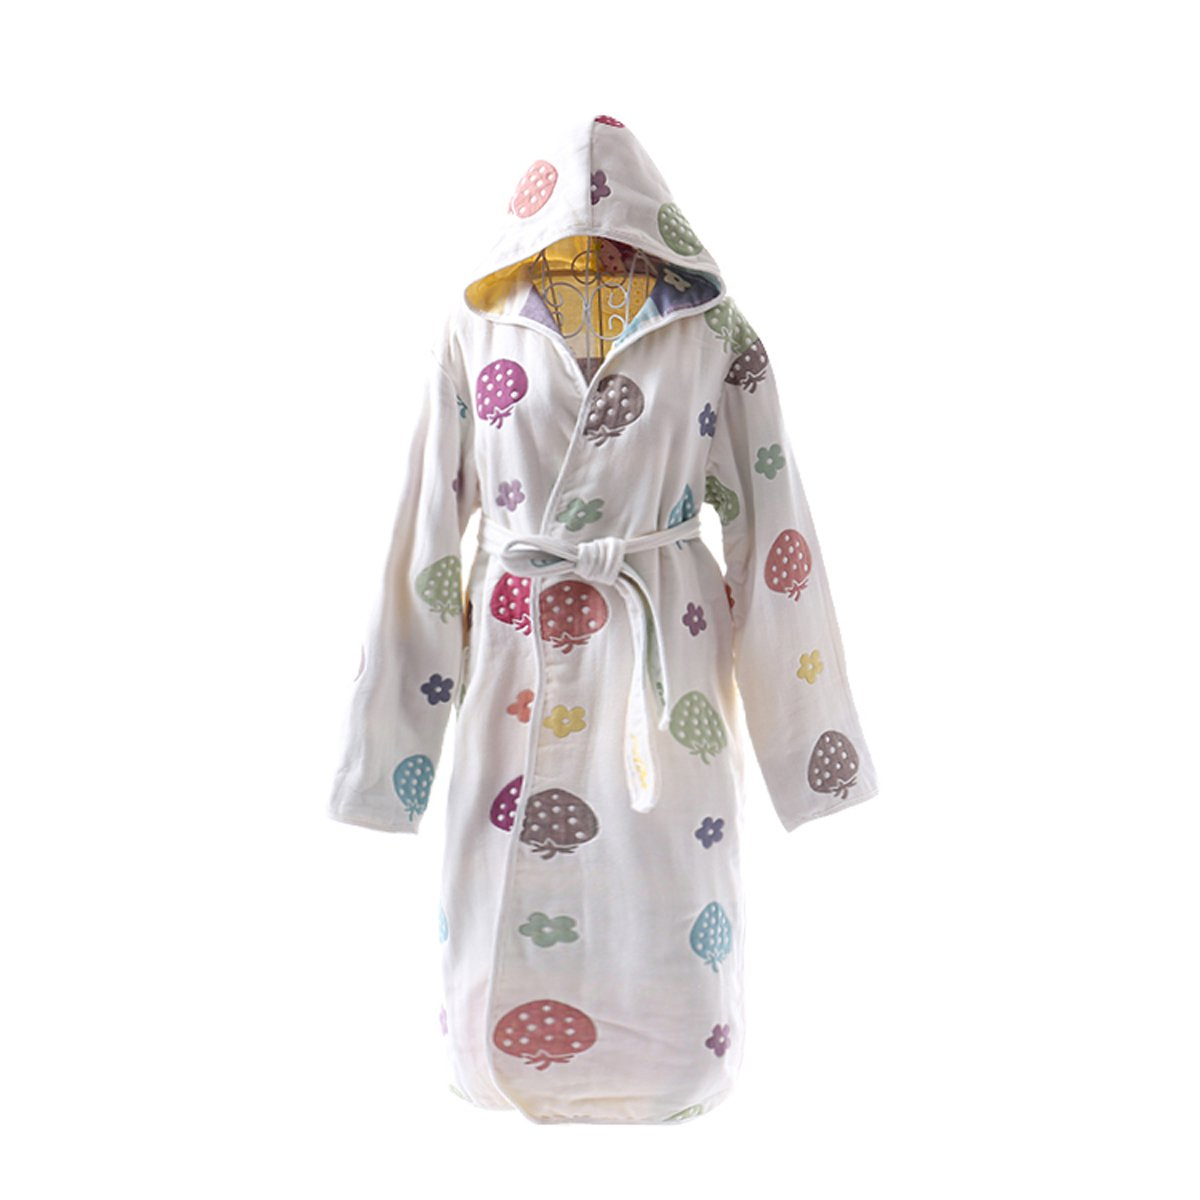 TOLLION 100% Organic Cotton Boys And Girls Hooded Robe Kids Bathrobe Nightgown (S: 5-6 Years, Color Strawberry)